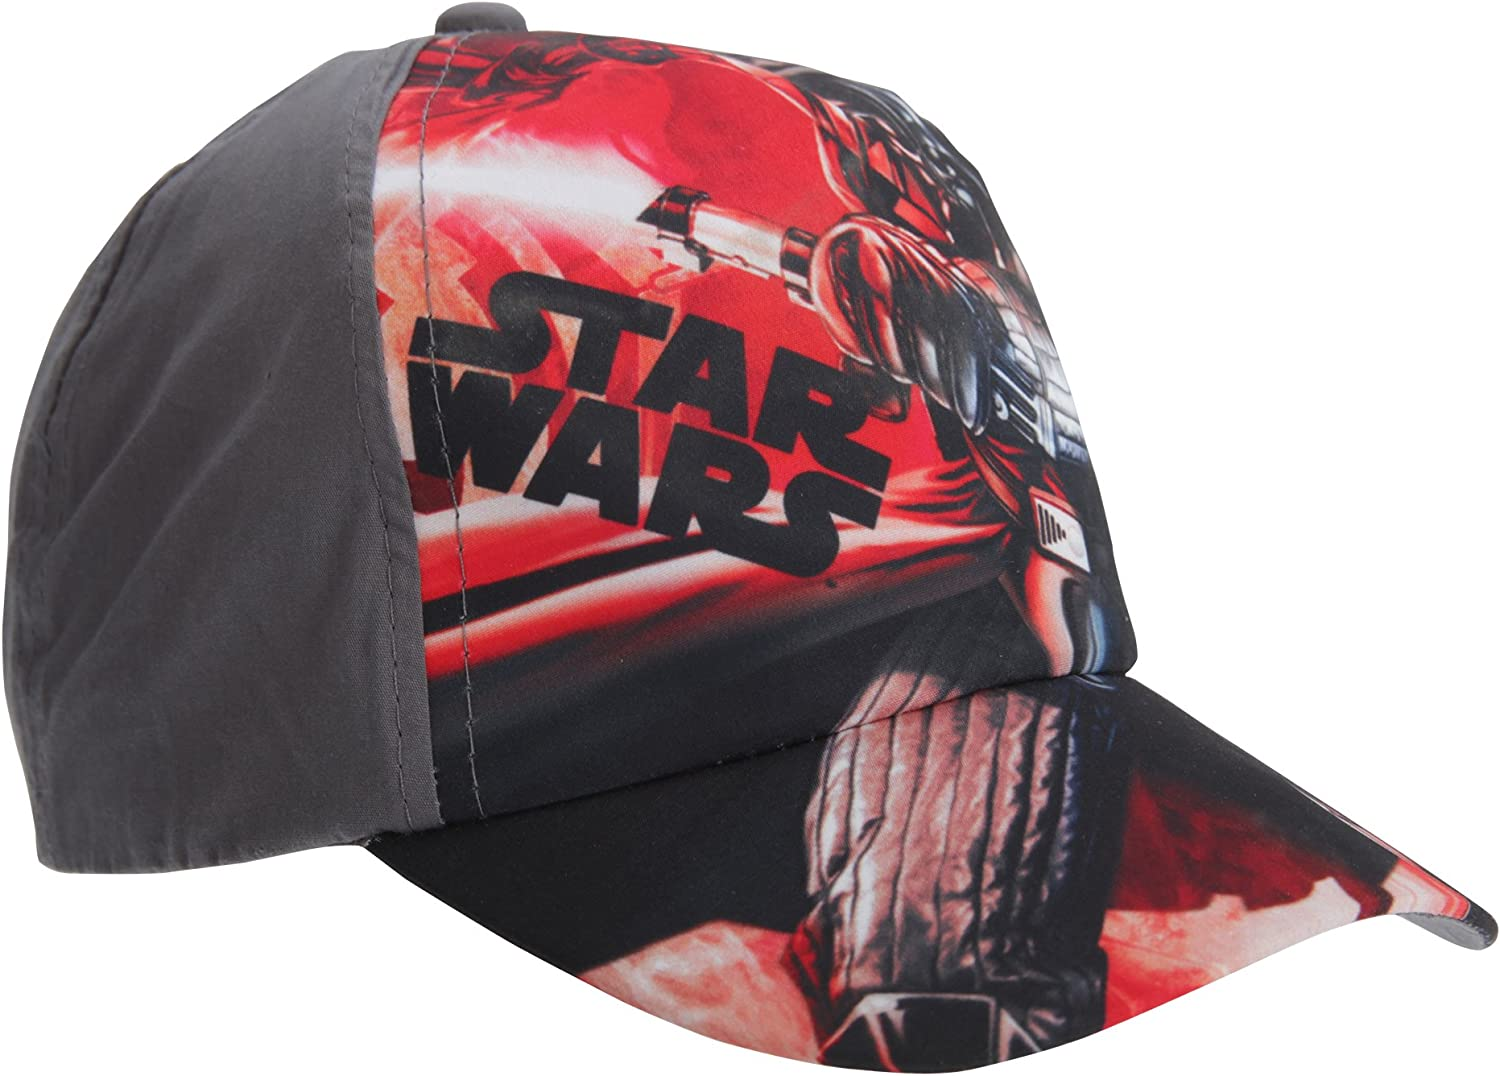 Gorra Star Wars Darth Vader surtido: Amazon.es: Juguetes y juegos